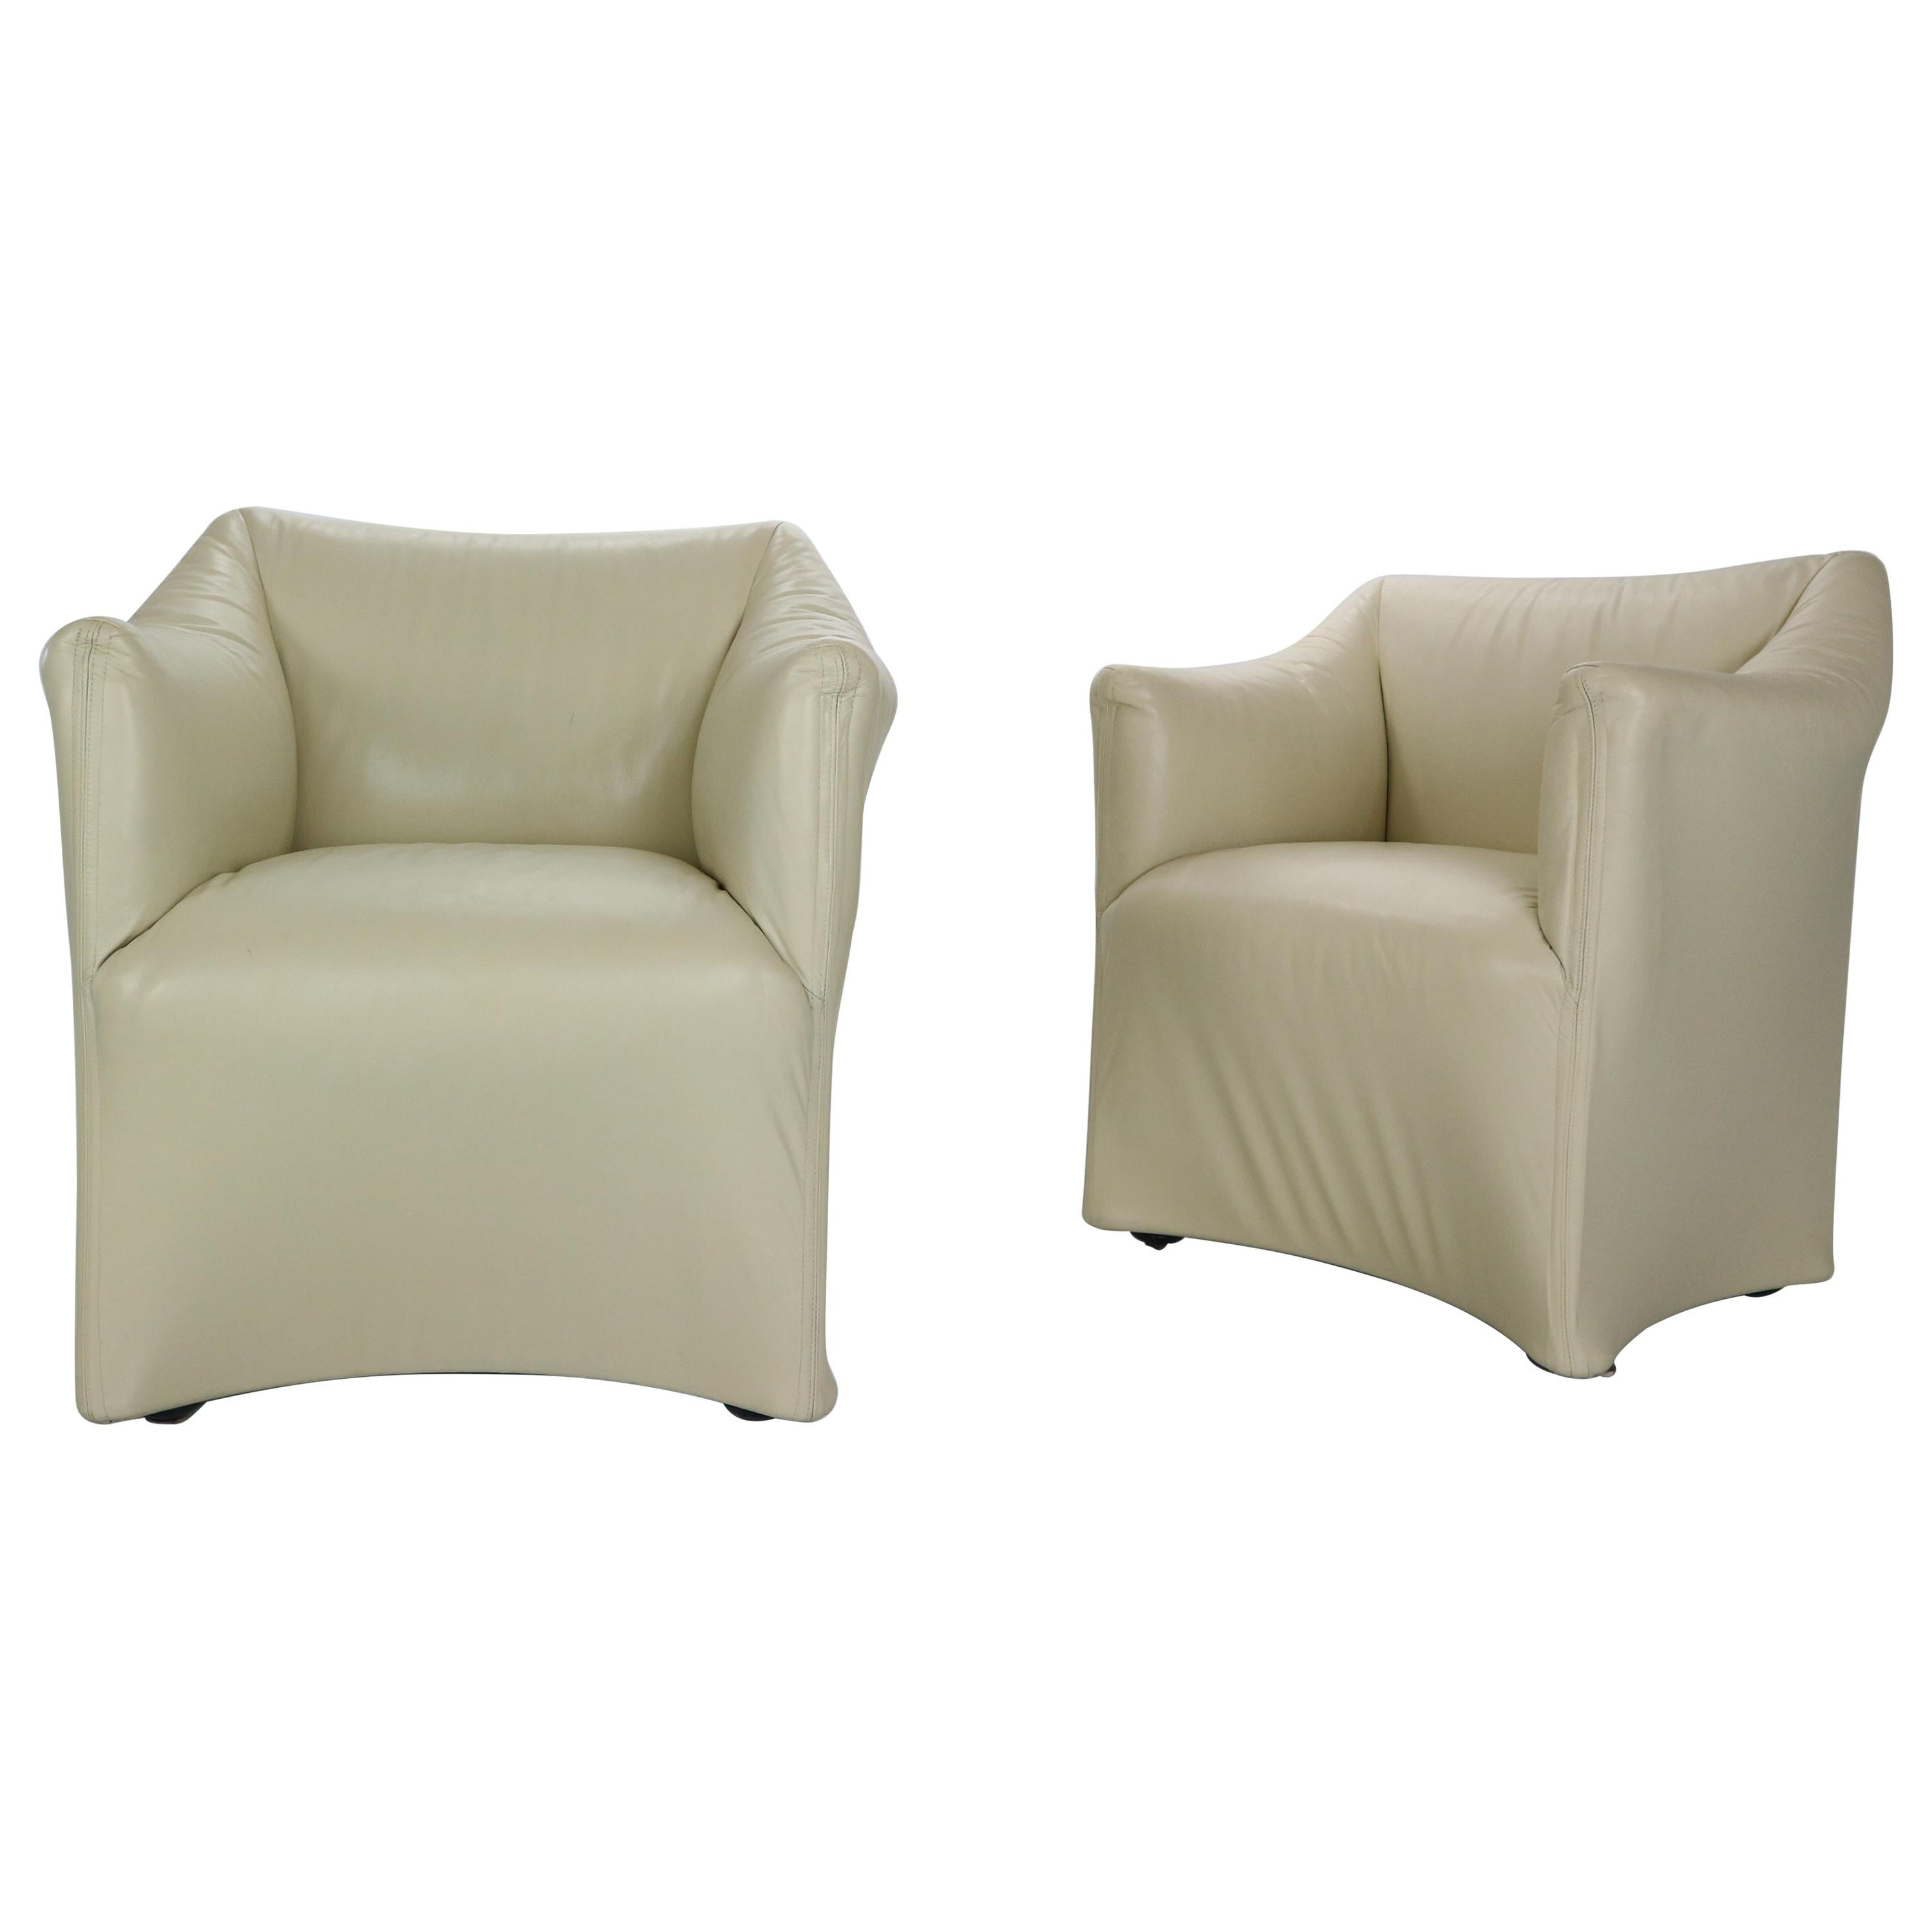 """Mario Bellini """"Tentazione"""" Set of 2 Leather Lounge Armchairs for Cassina, 1970s"""